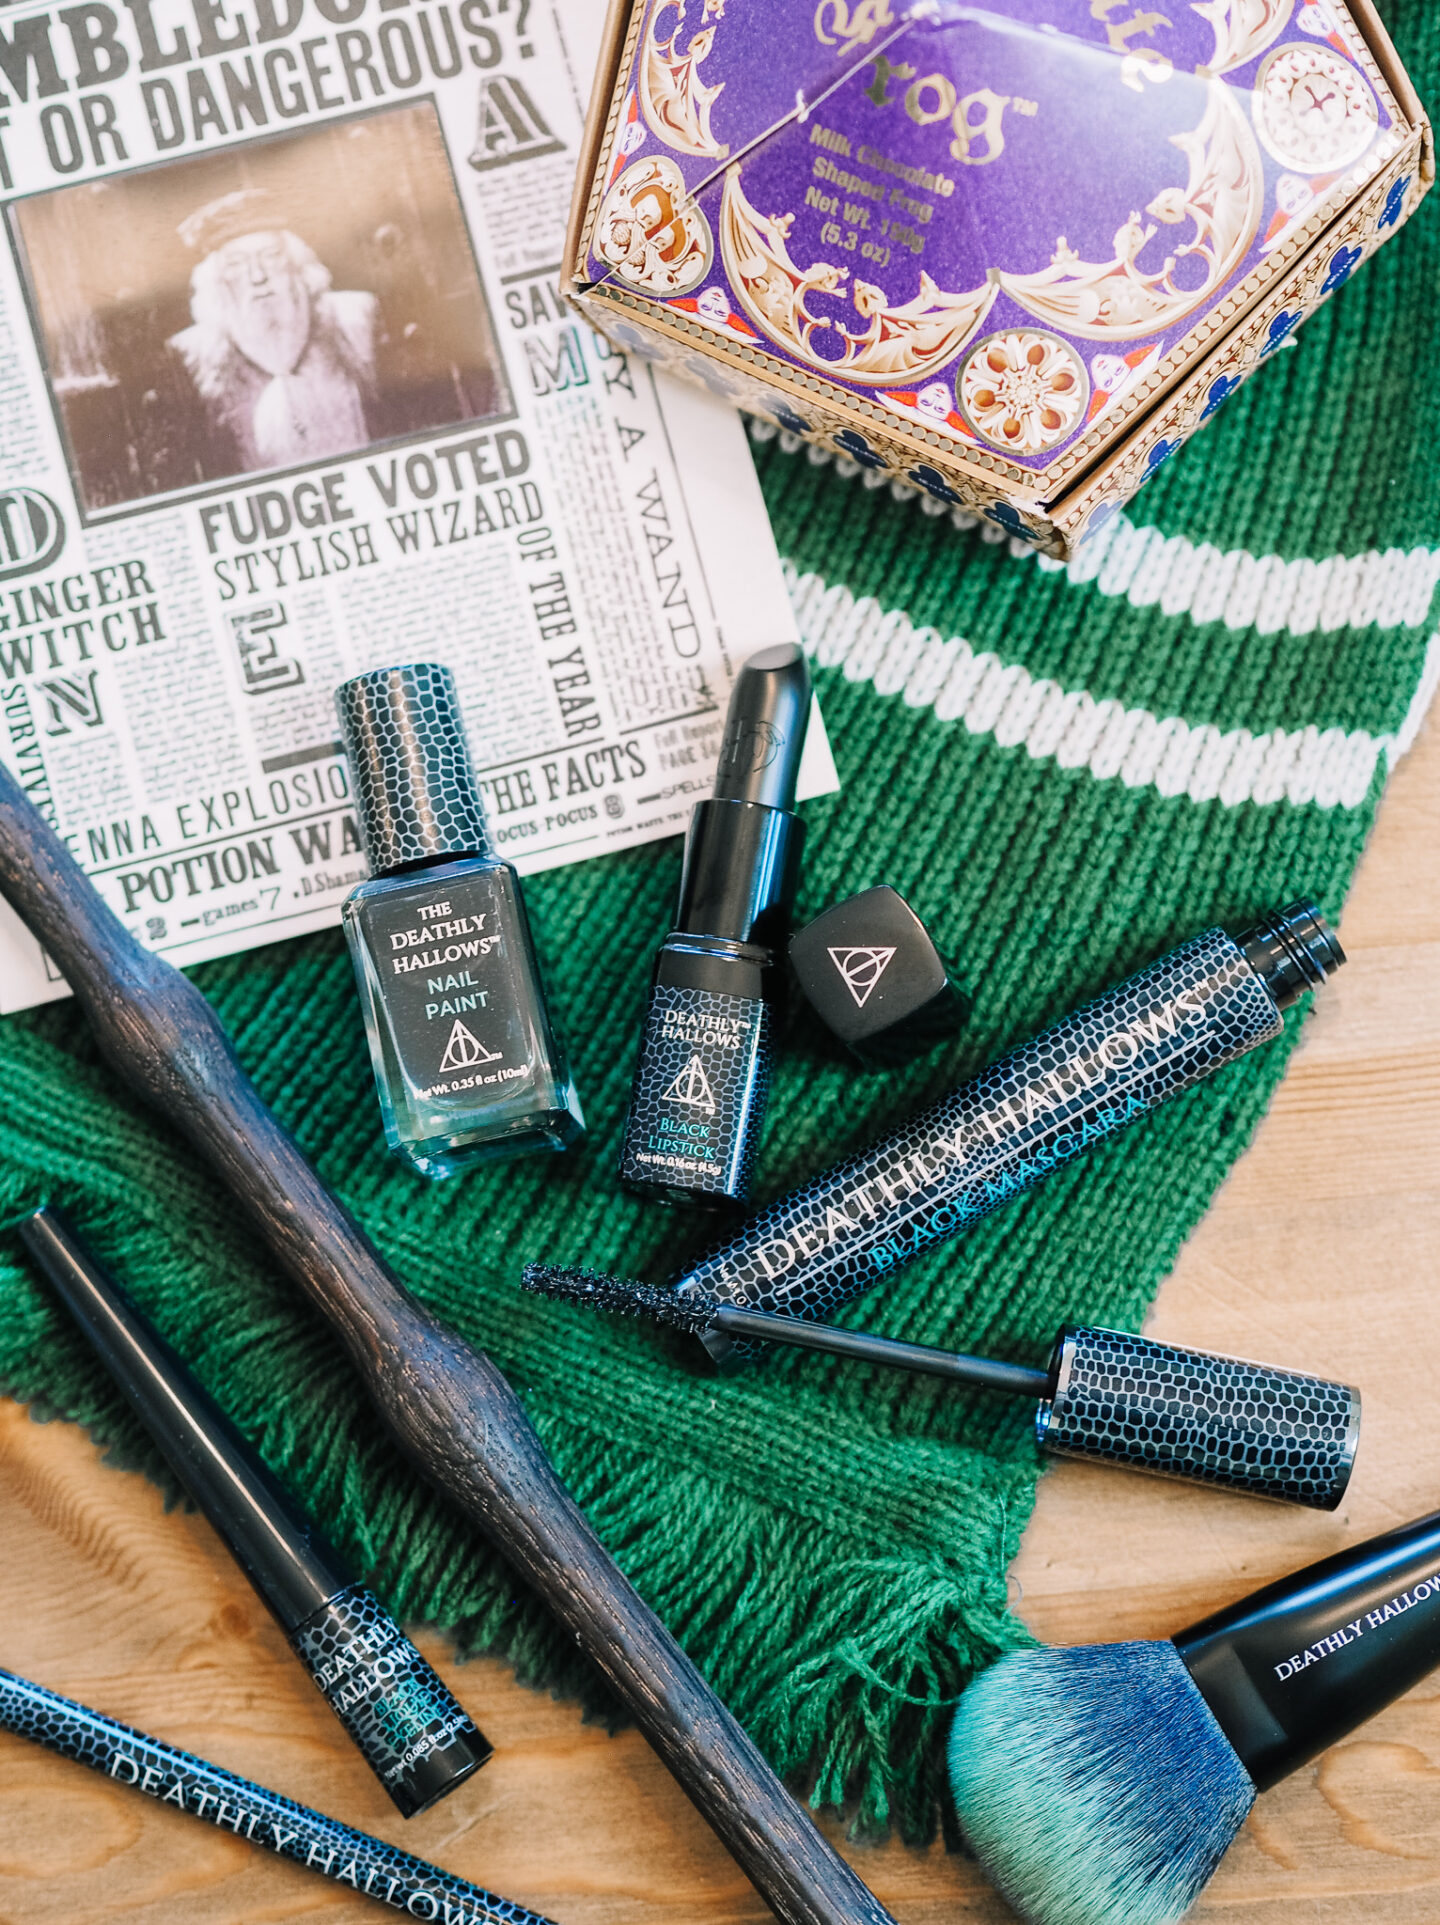 Harry Potter Makeup Collection From Barry M Cosmetics